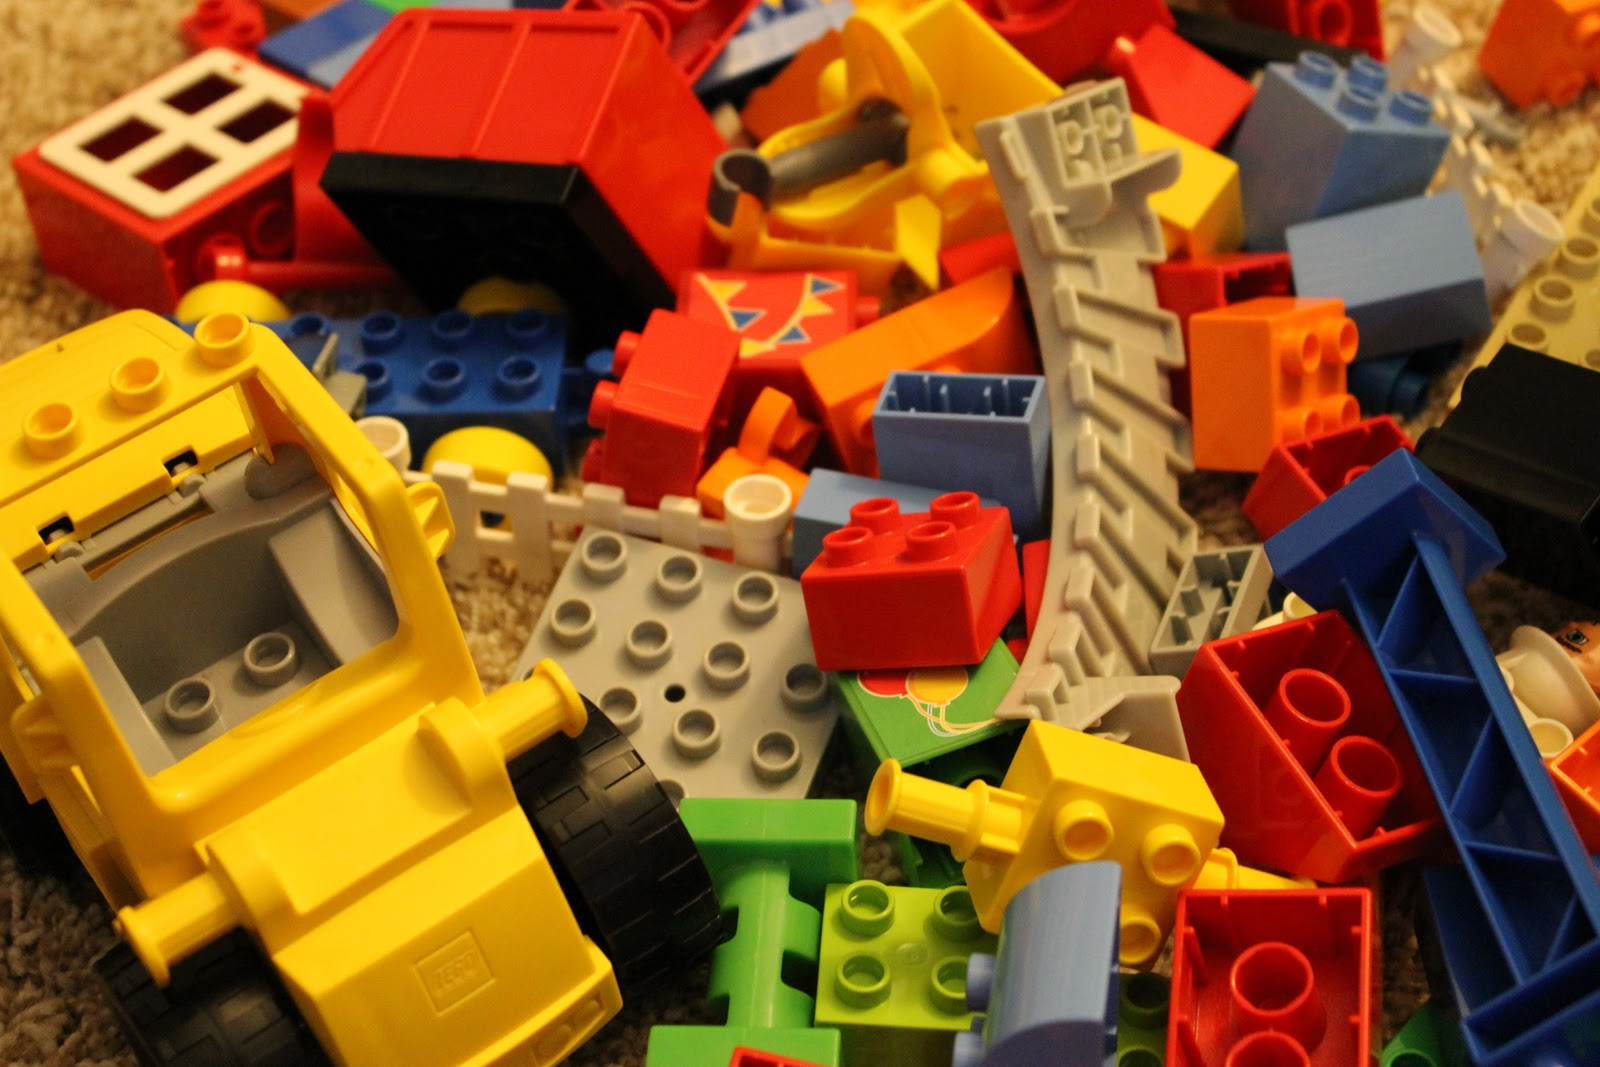 Toddler Approved Lego 174 City Fire Zipbin 174 Playmat Review